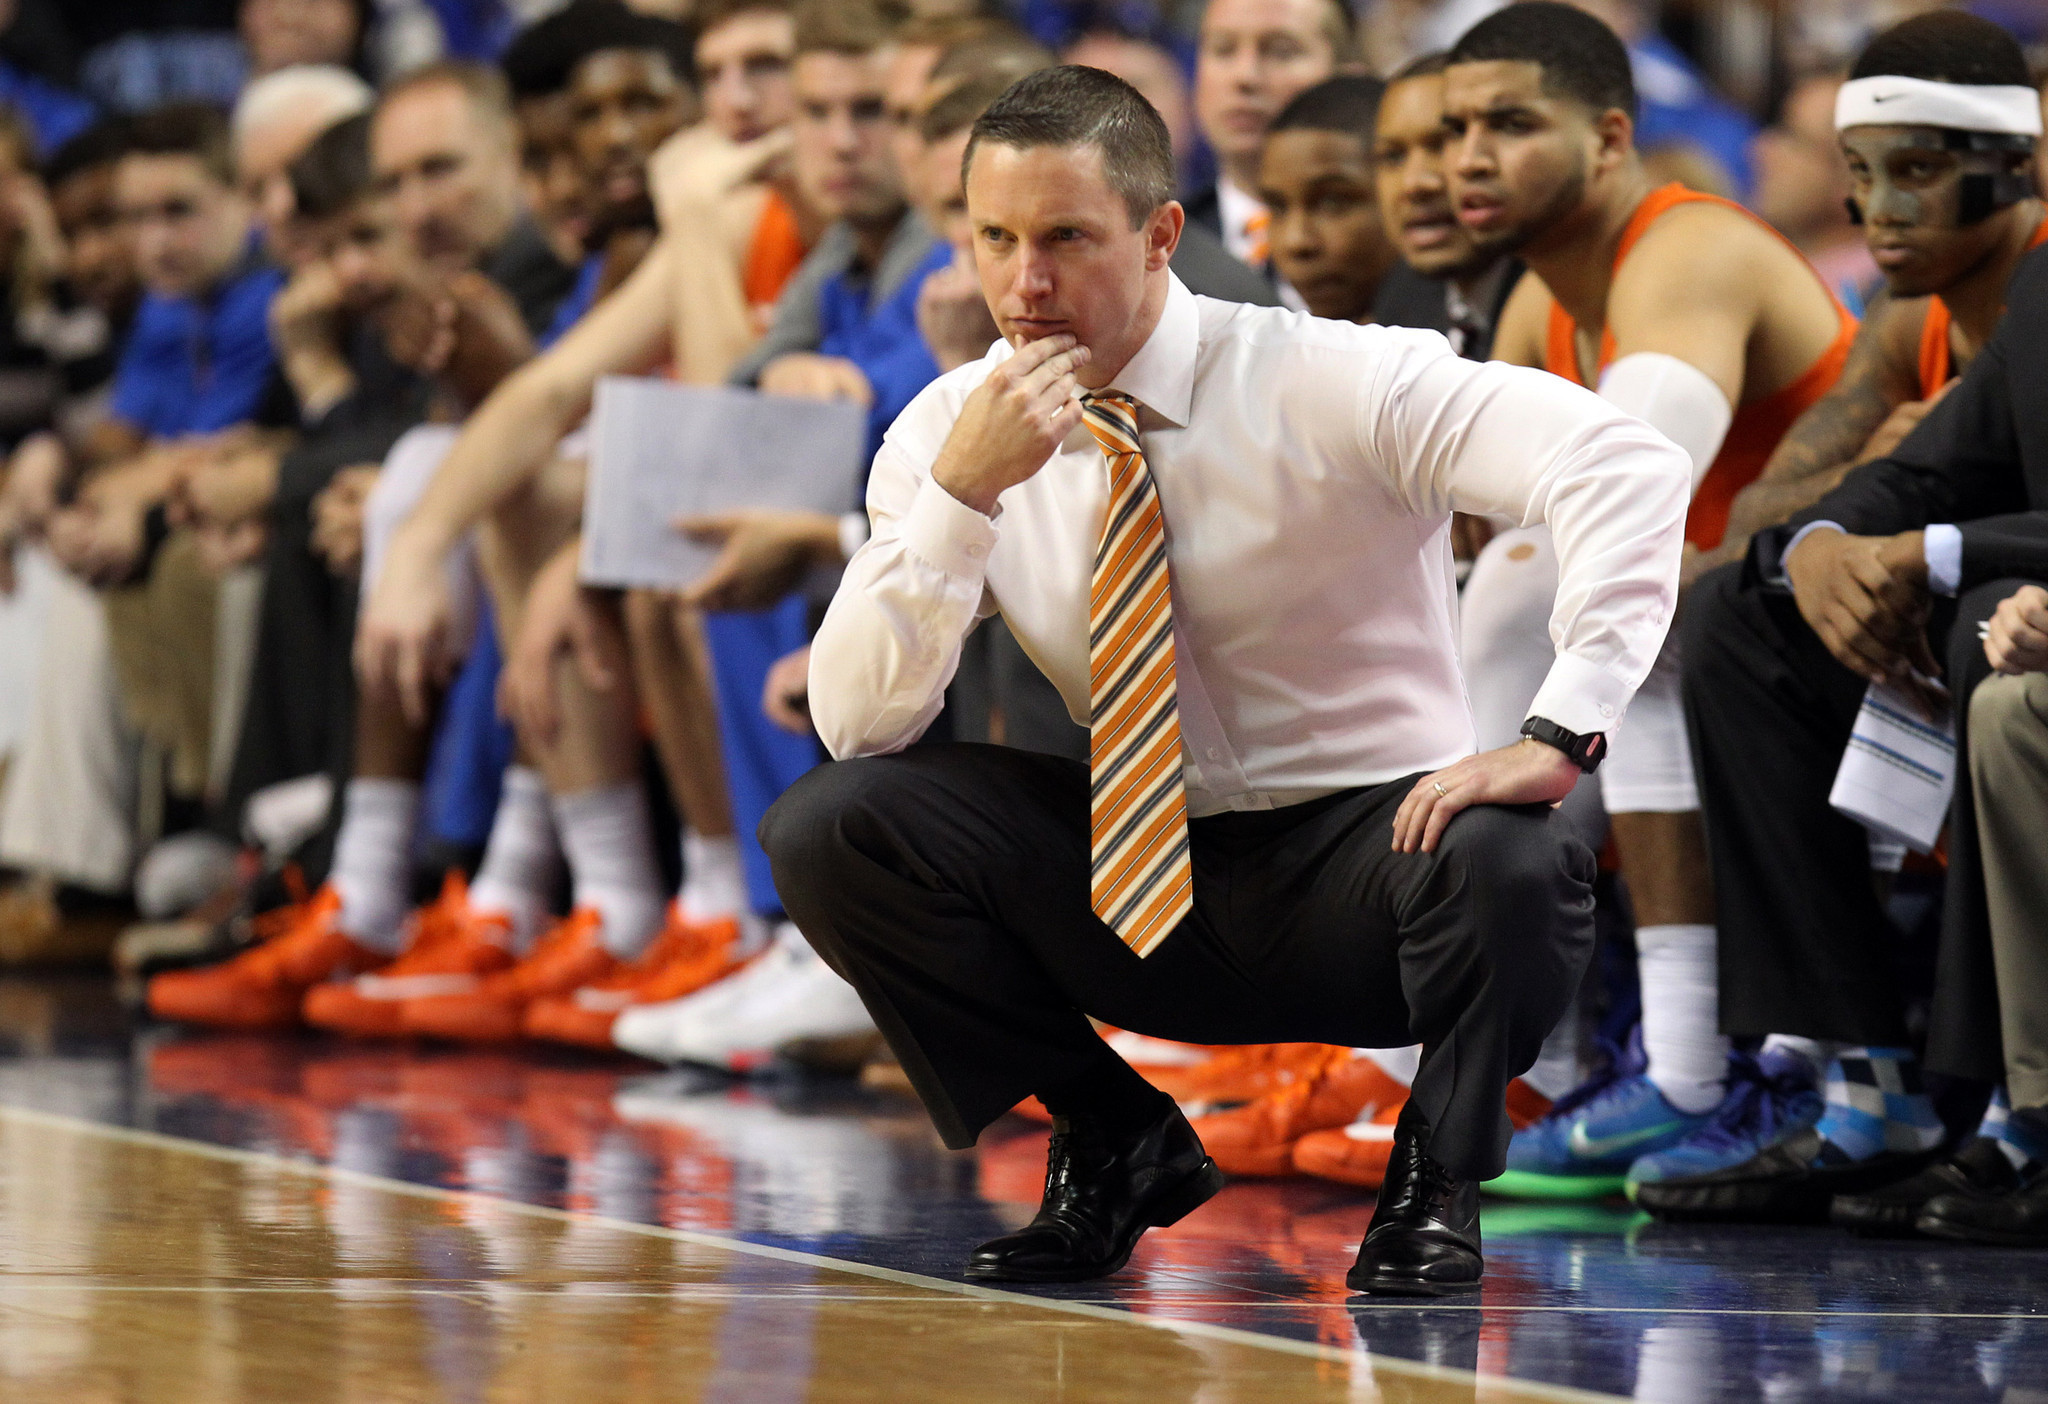 Os-gators-return-to-top-25-in-men-s-basketball-for-first-time-since-2014-20161128